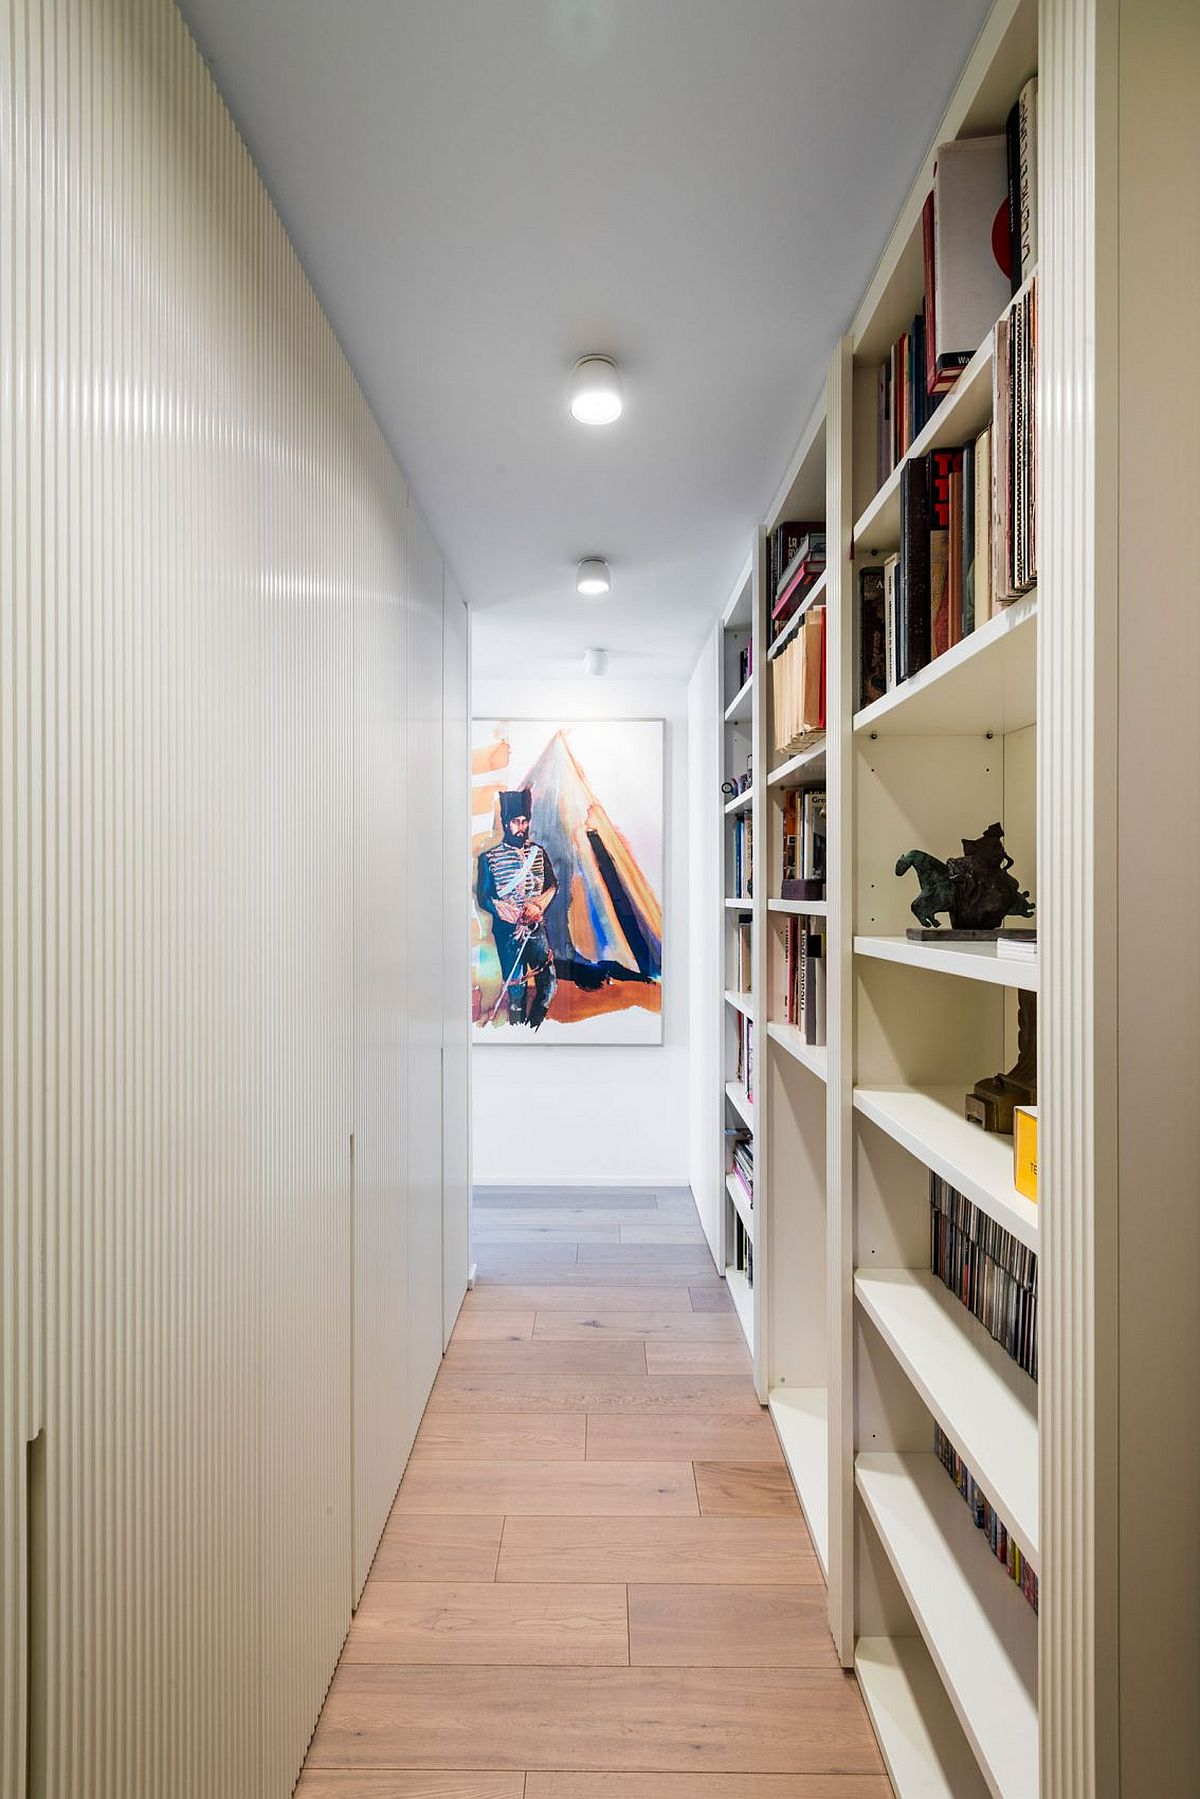 Hallway and corridor with bookshelves offers additional storage space